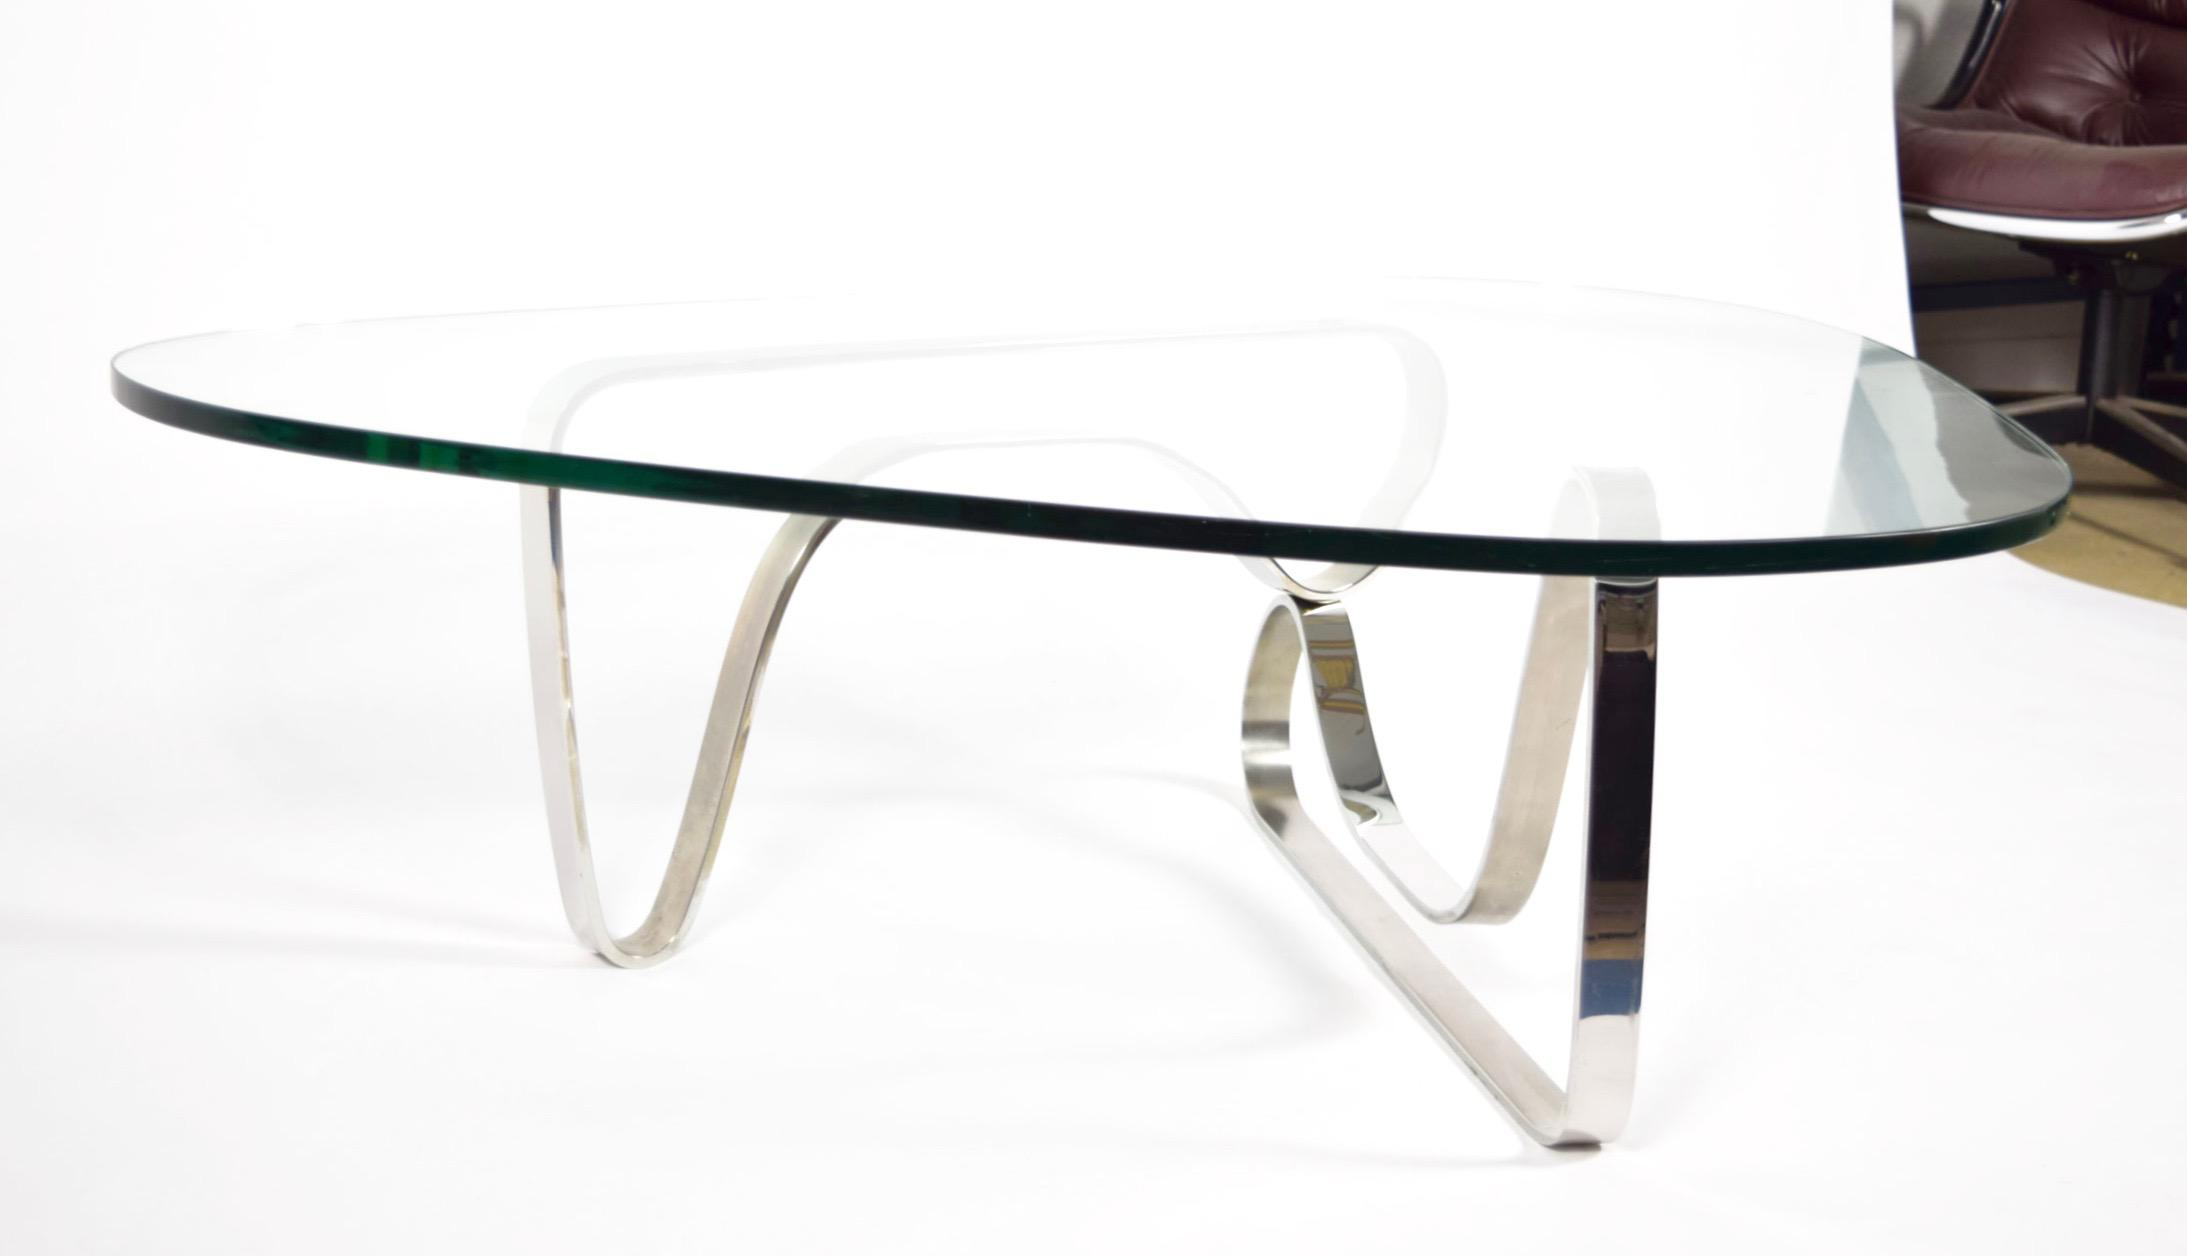 Noguchi Style Coffee Table With Stainless Steel Base   Image 6 Of 7